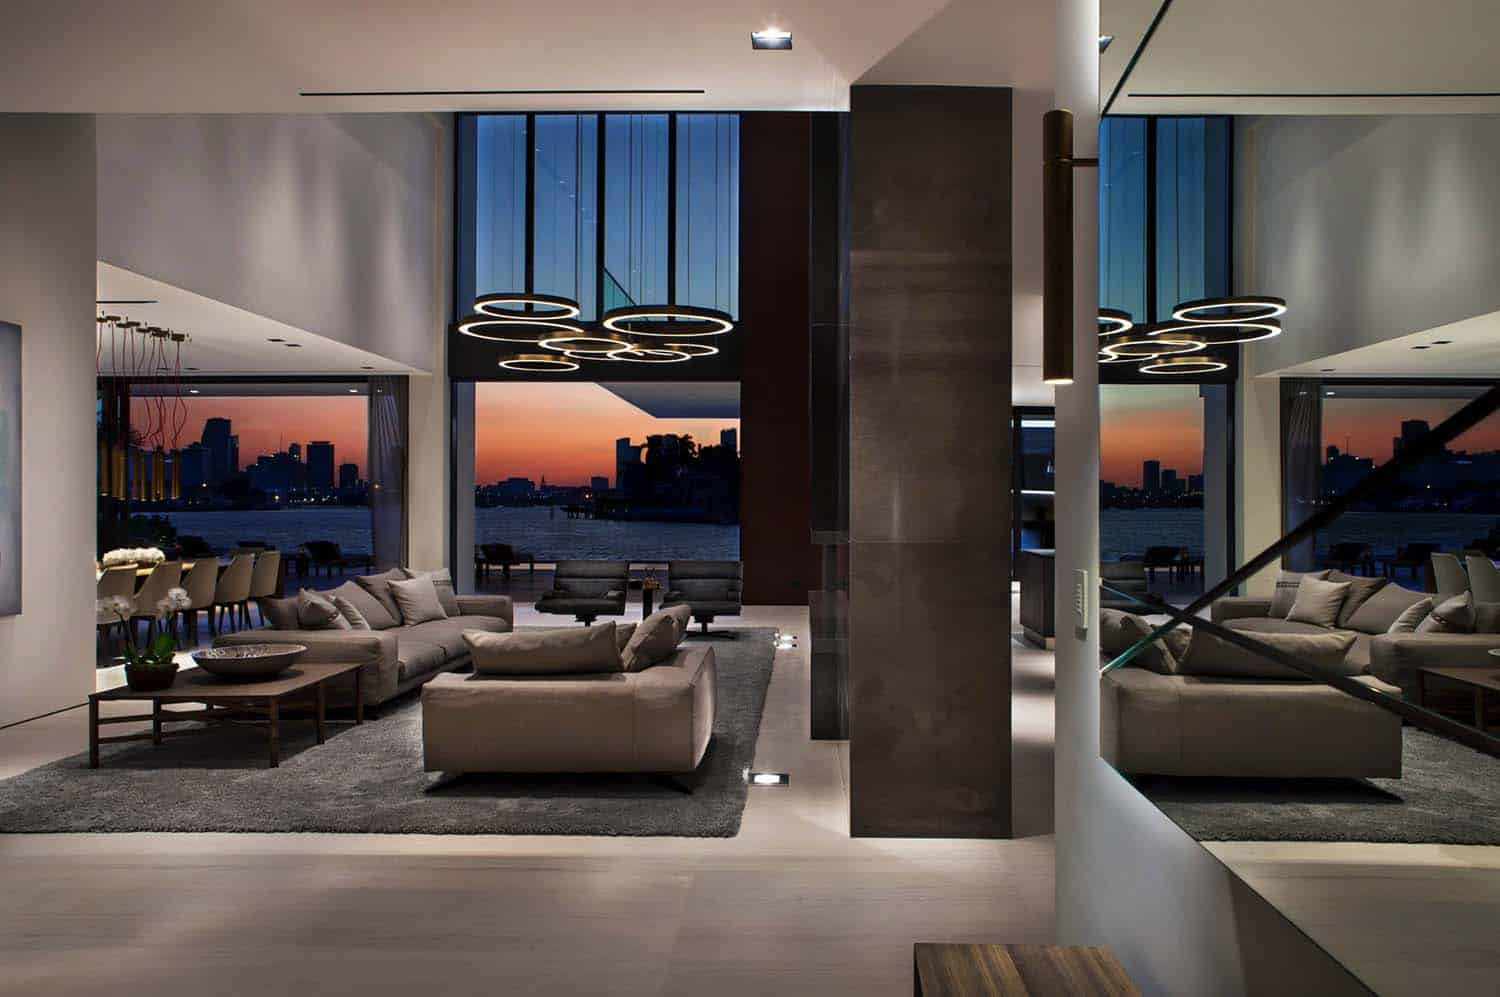 sofa cleaning miami beach table with nesting benches opulent oceanfront home soaks in views of the skyline